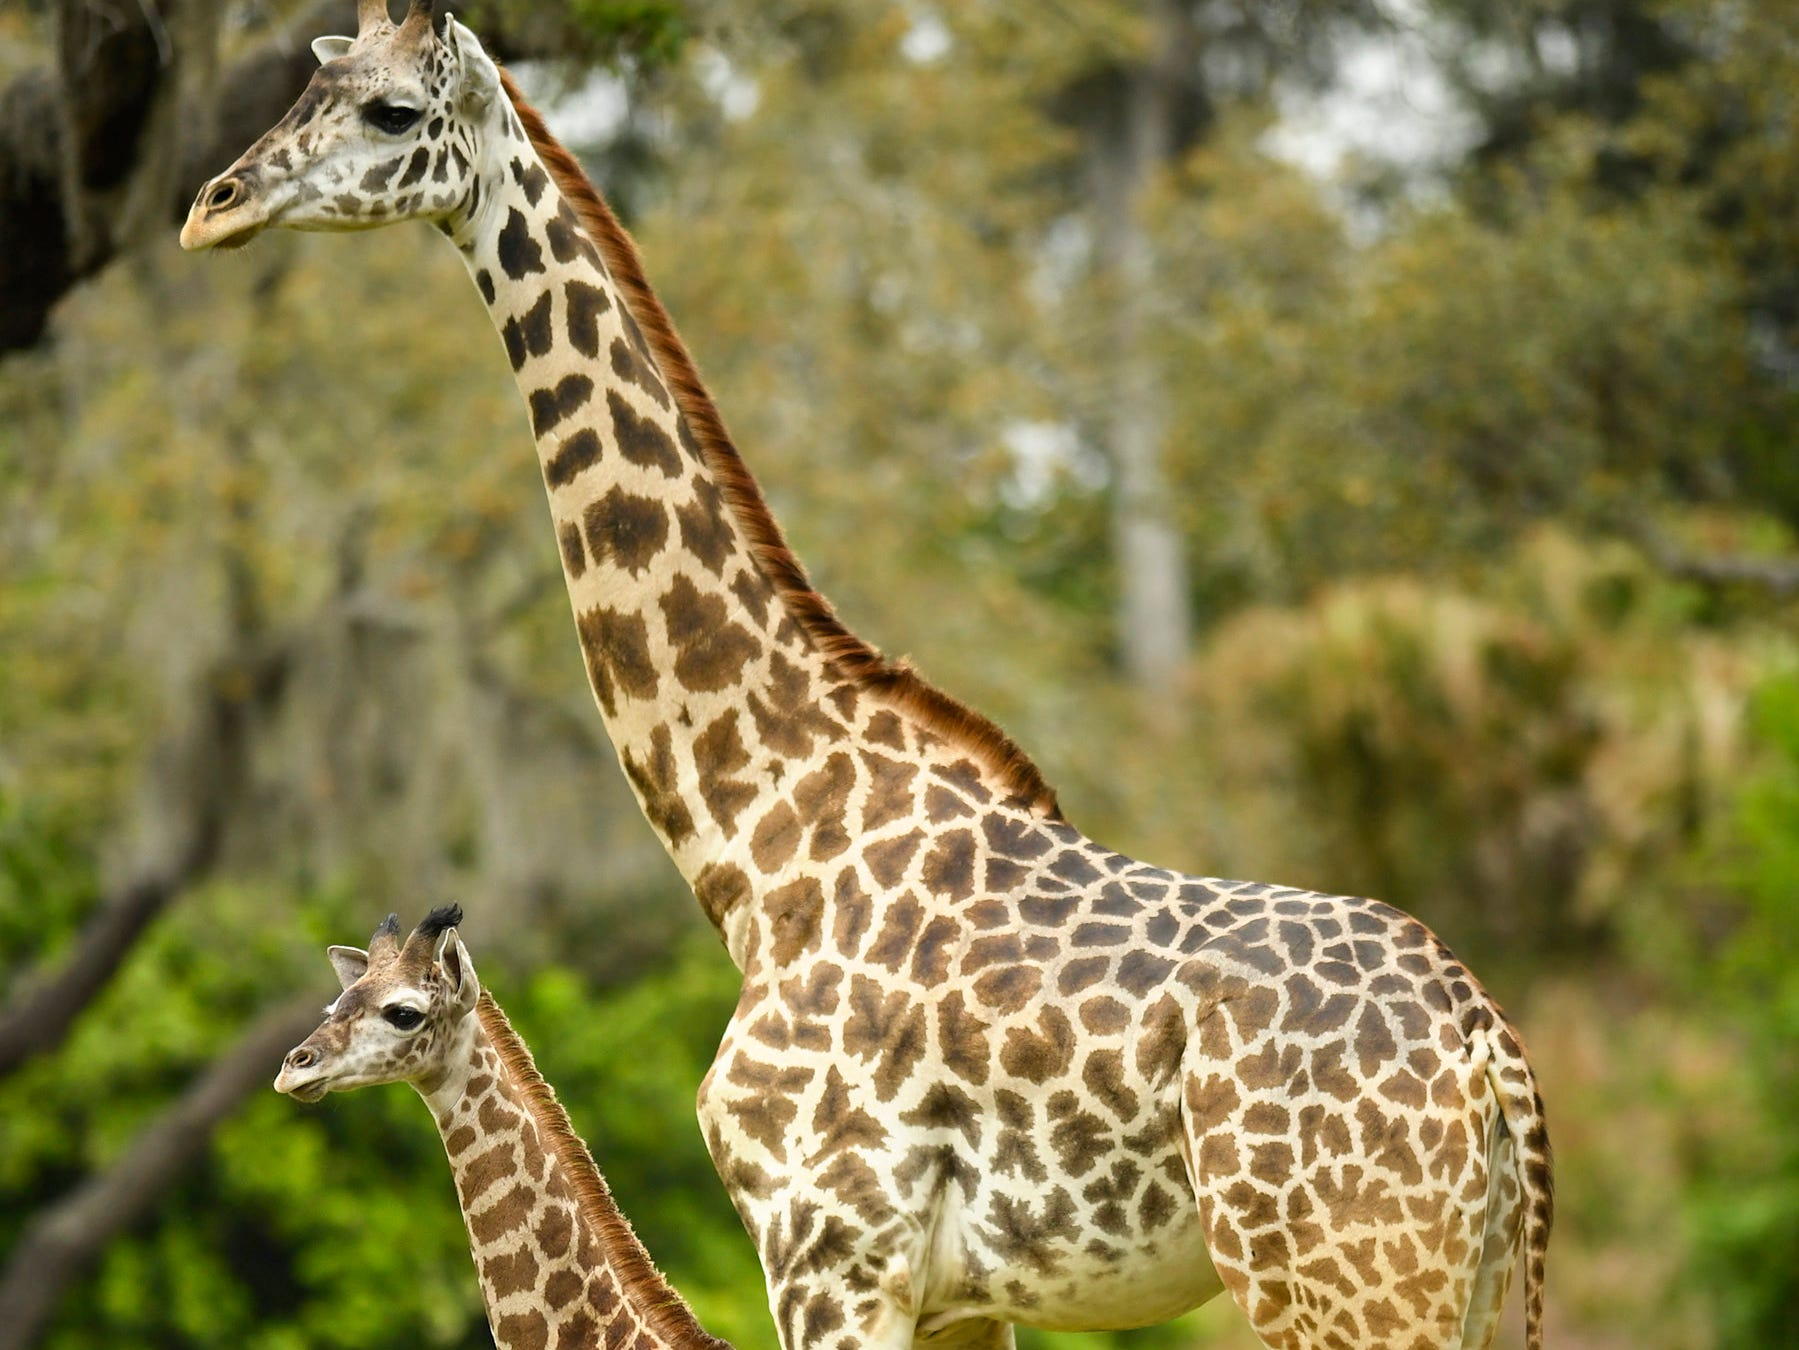 A 2-month-old male Masai giraffe named Jabari has officially joined the  herd at Disney's Animal Kingdom at Walt Disney World Resort in Lake Buena Vista, Florida.